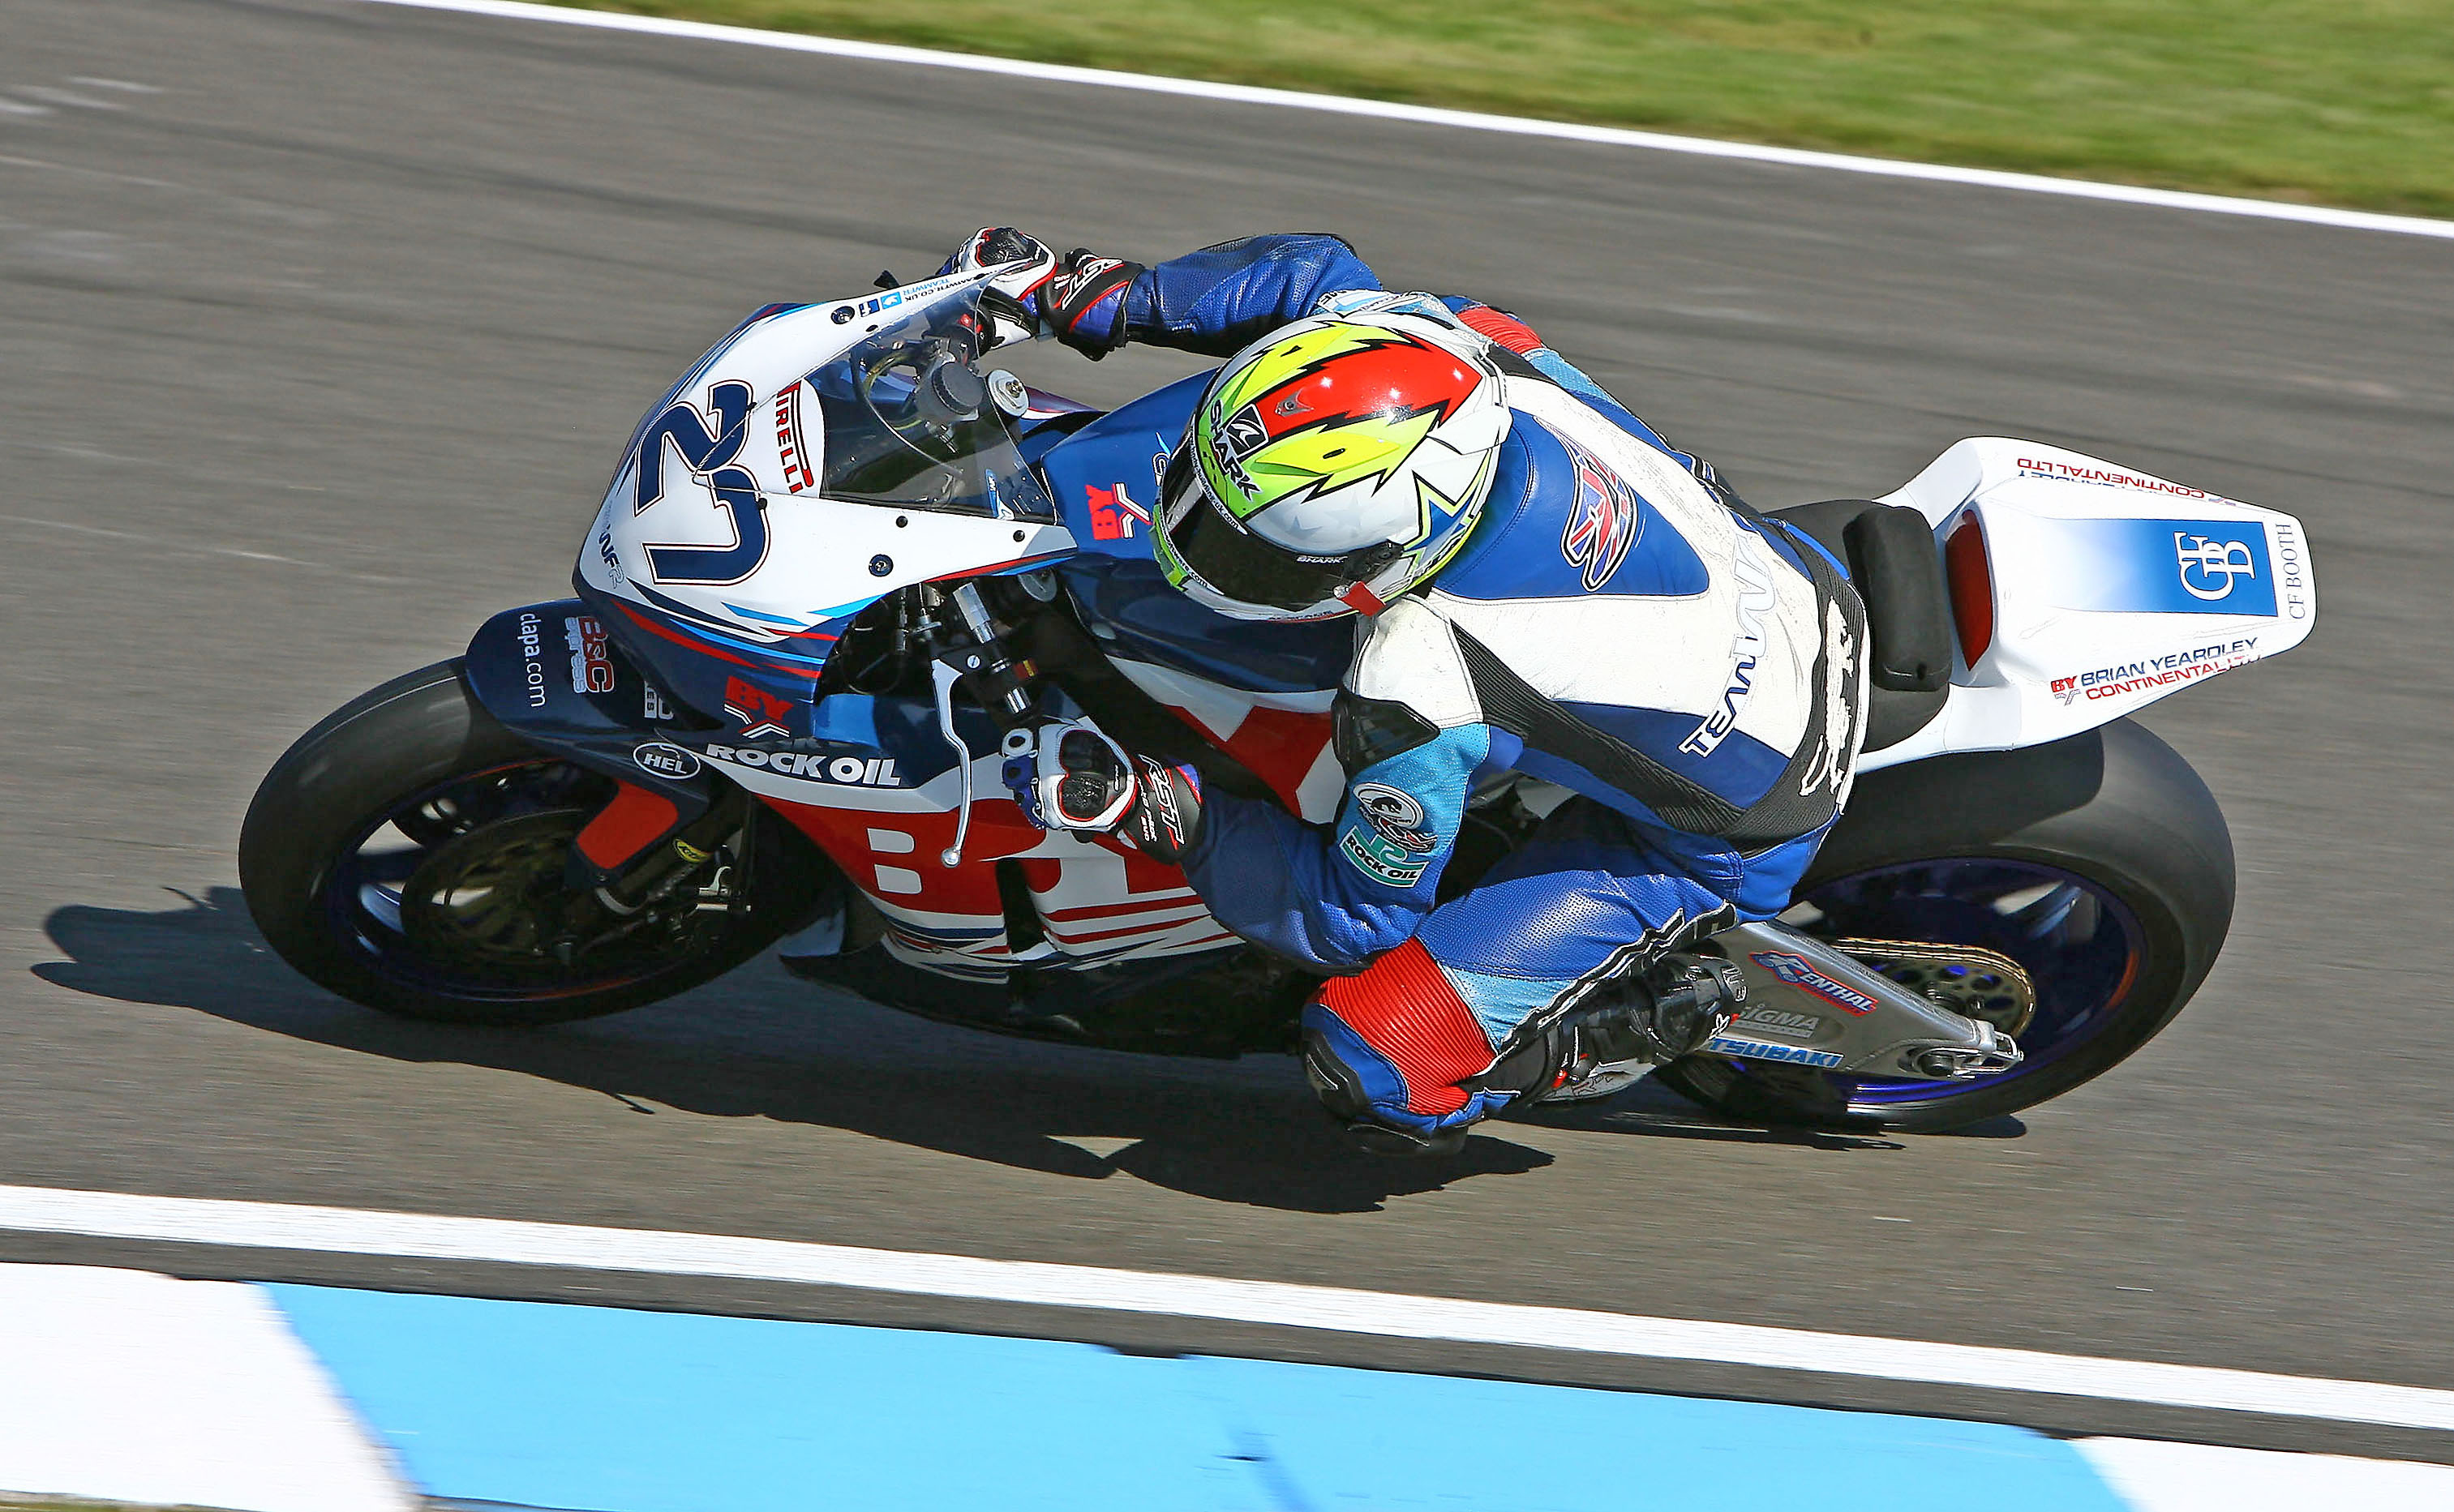 James Westmoreland, Team WFR, Donington Park, September 2012